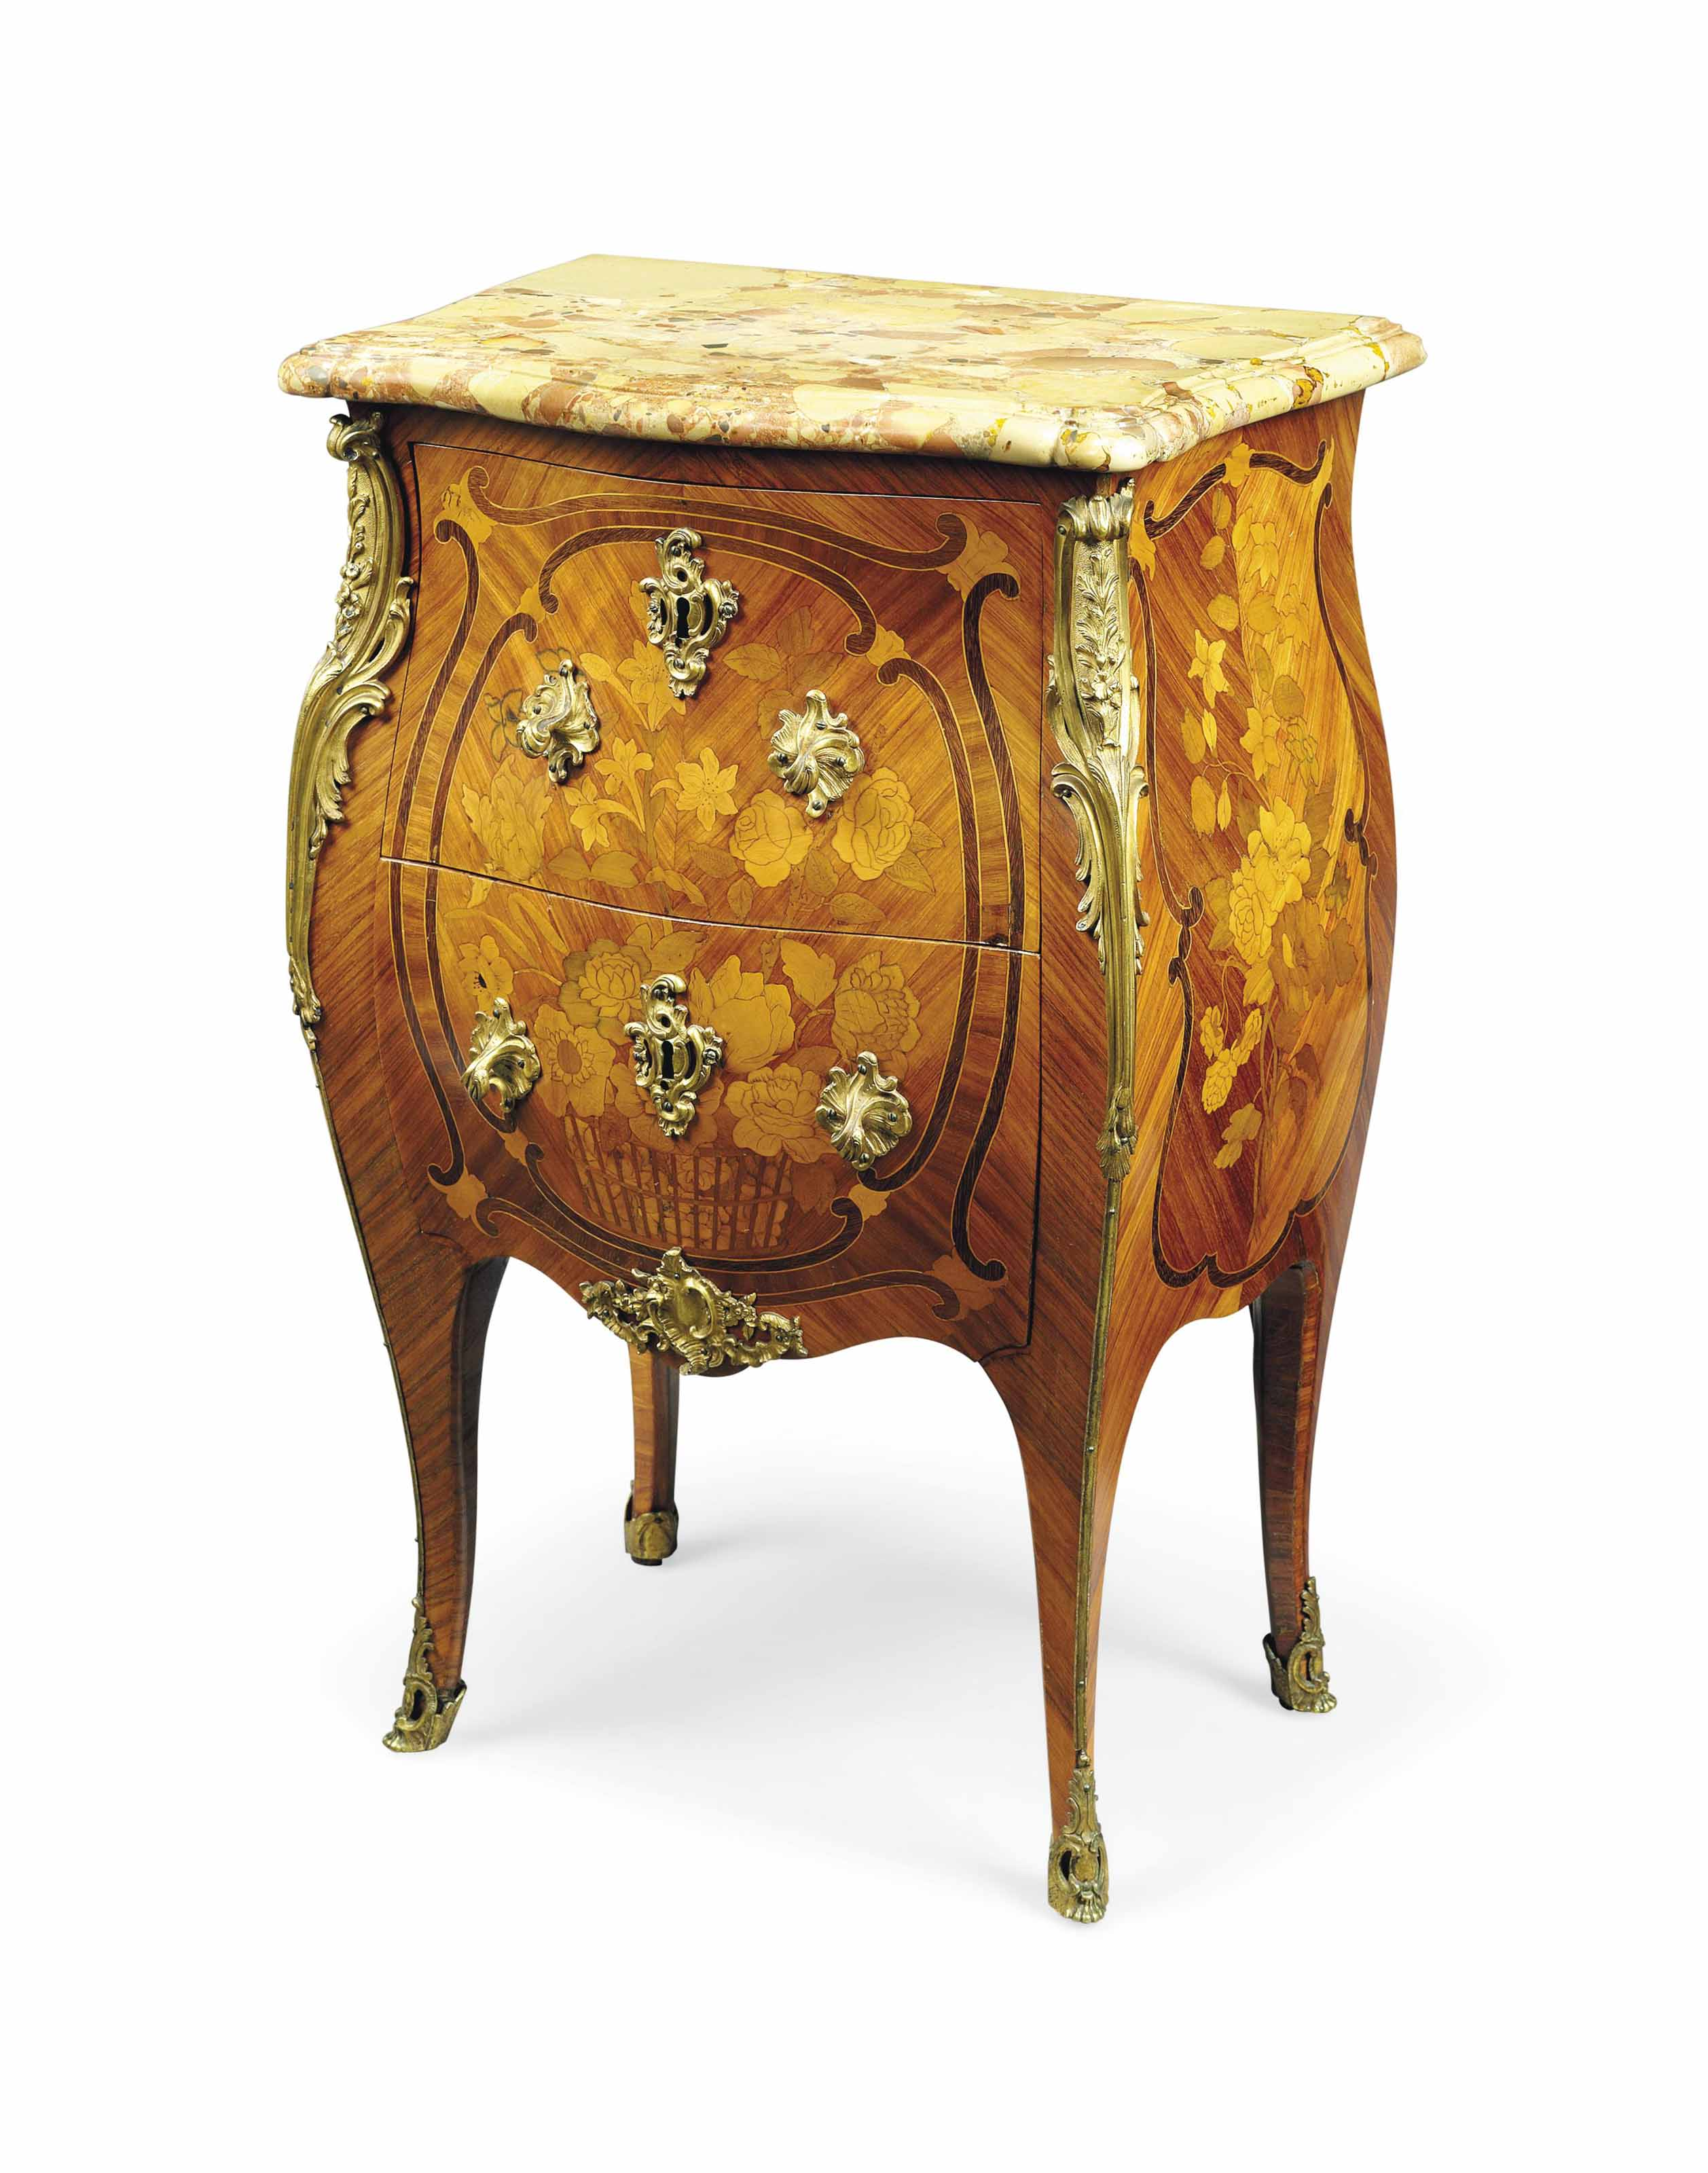 A LOUIS XV ORMOLU-MOUNTED TULIPWOOD, AMARANTH AND FLORAL MARQUETRY BOMBÉ COMMODE